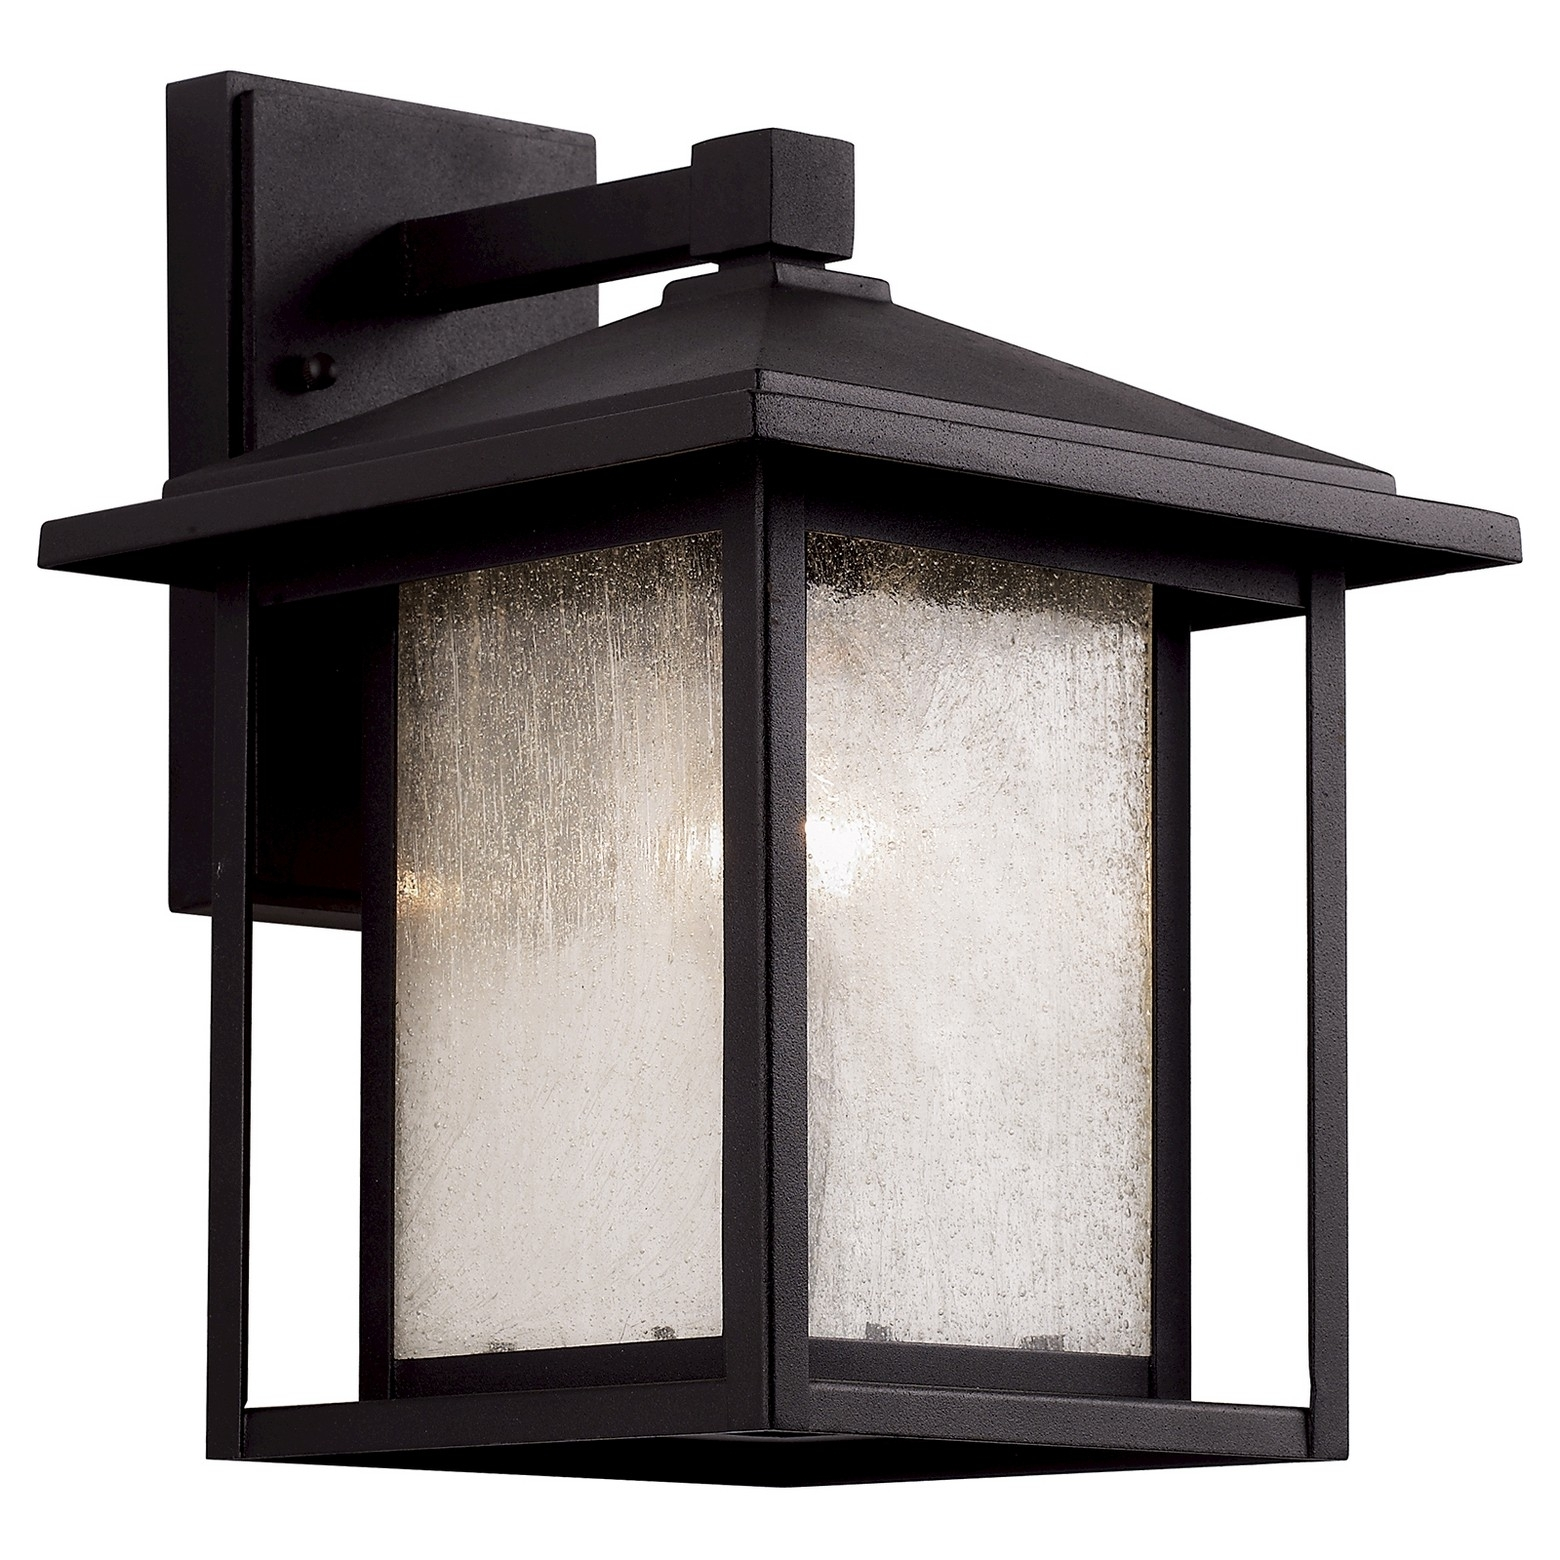 15 collection of outdoor wall lantern by transglobe lighting